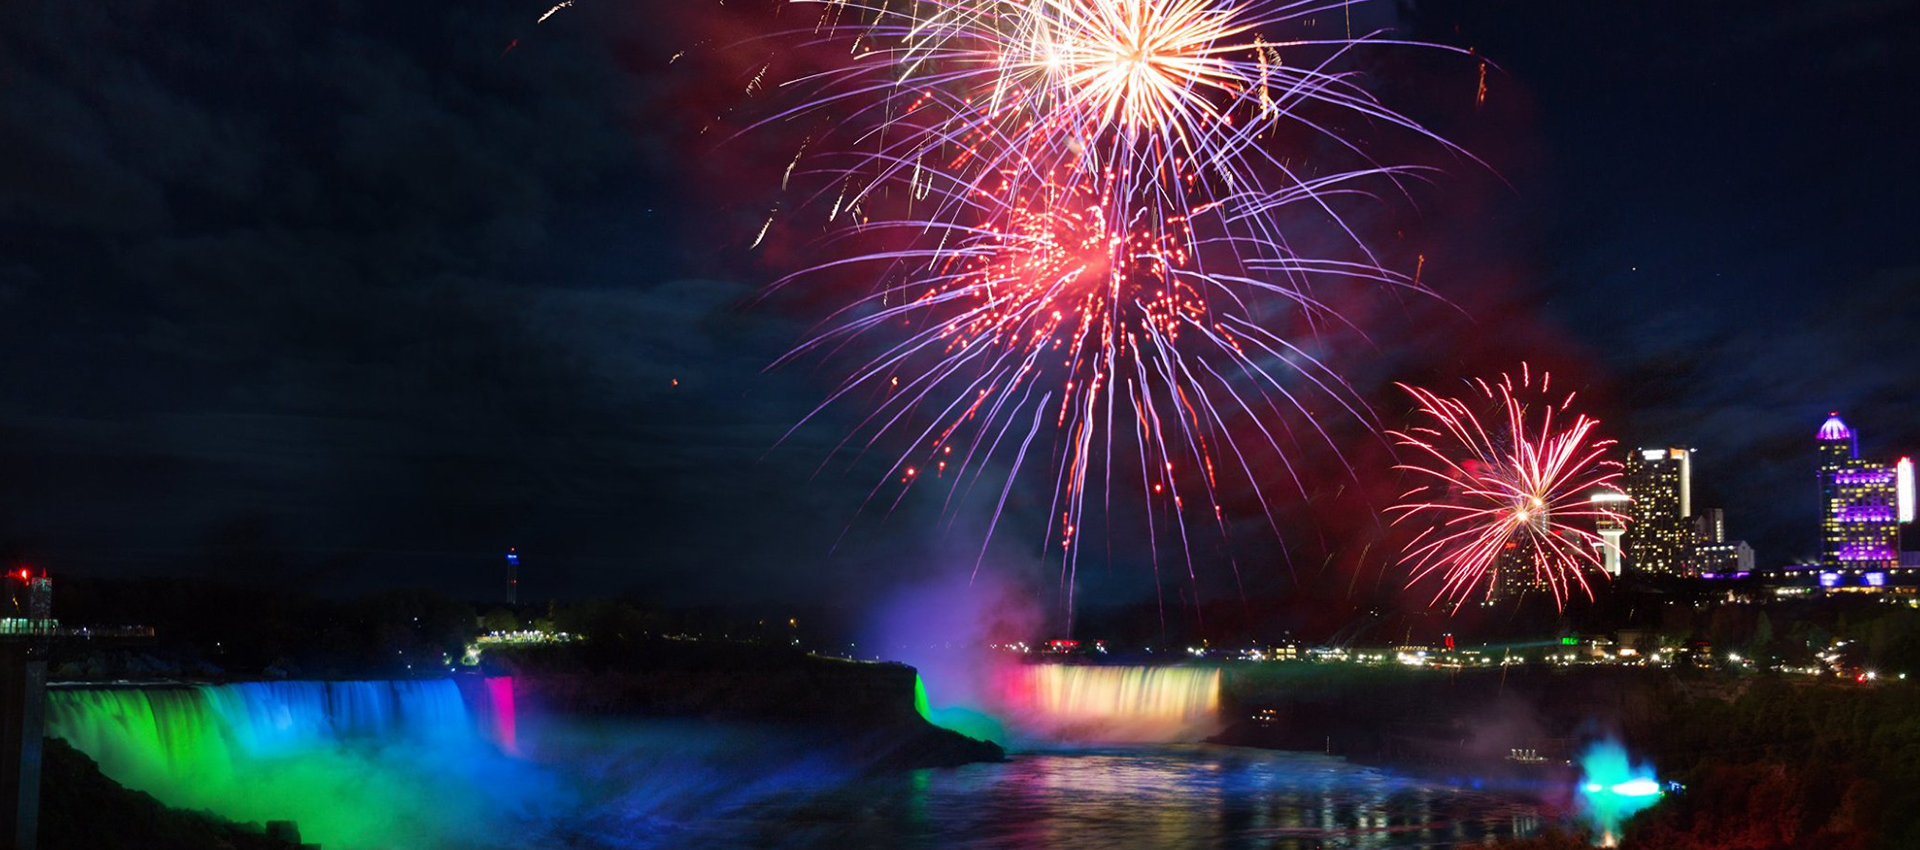 Exploding fireworks illuminate the sky on the Niagara Falls with shimmering light at night